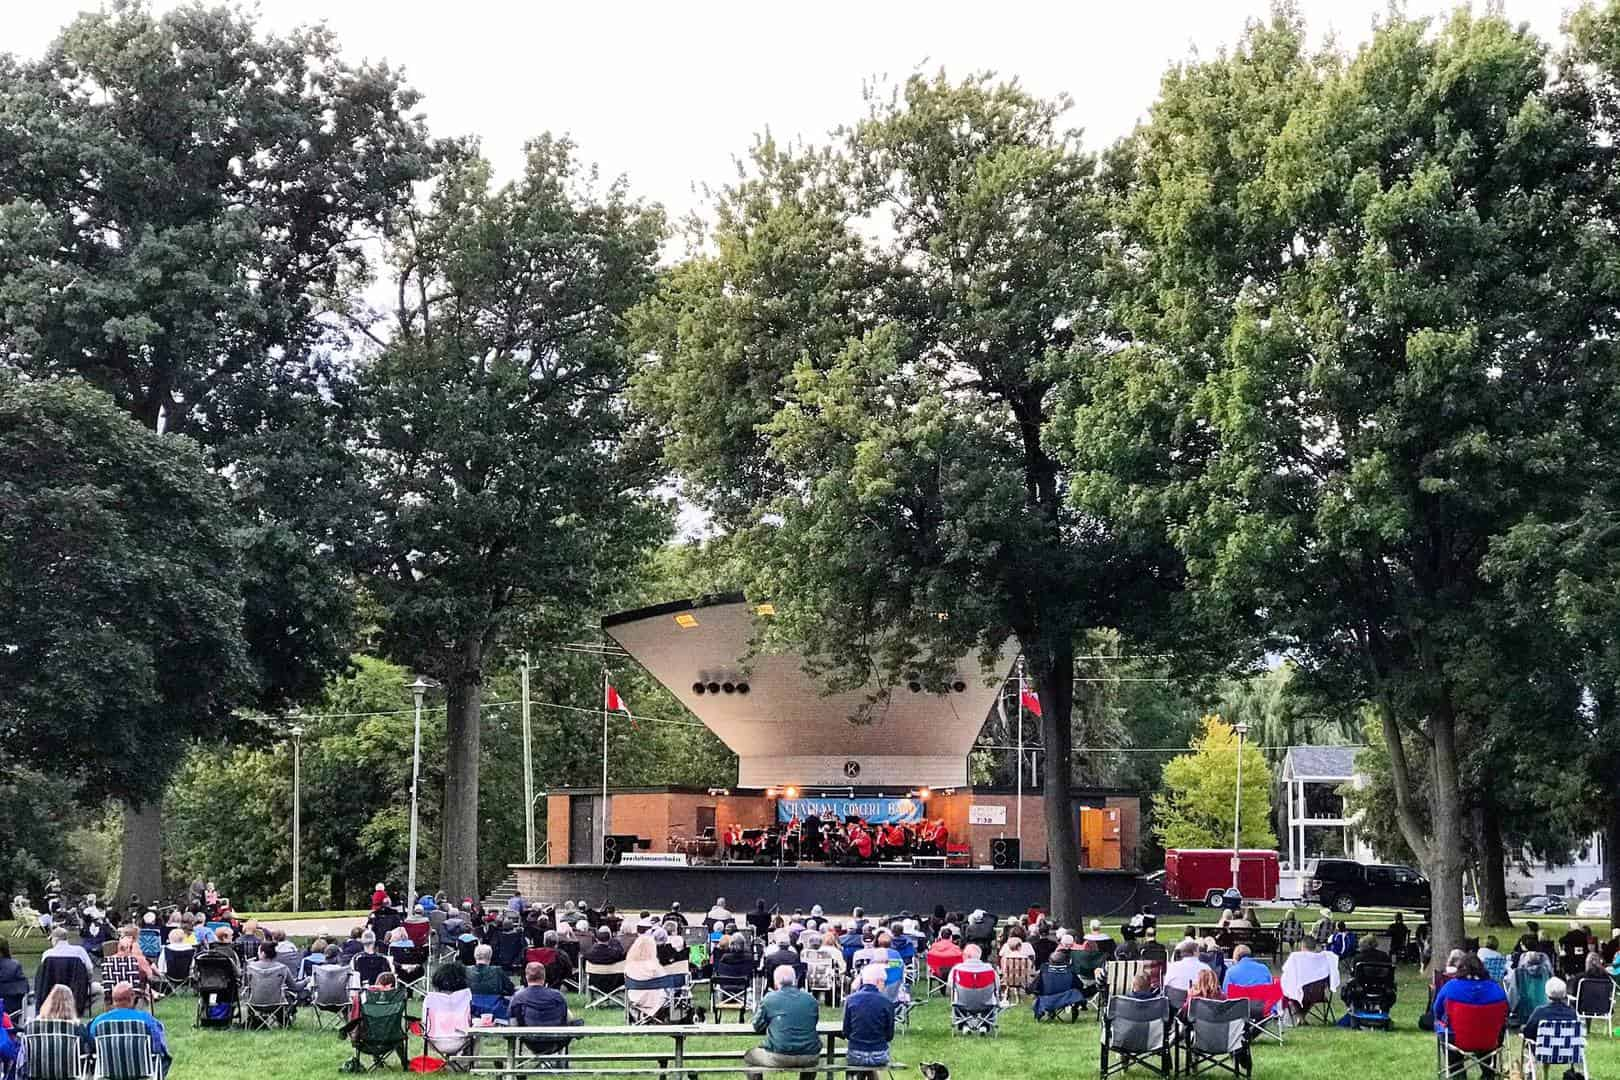 Scene and people on the performance during Chatam Concert in Tecumseh Park